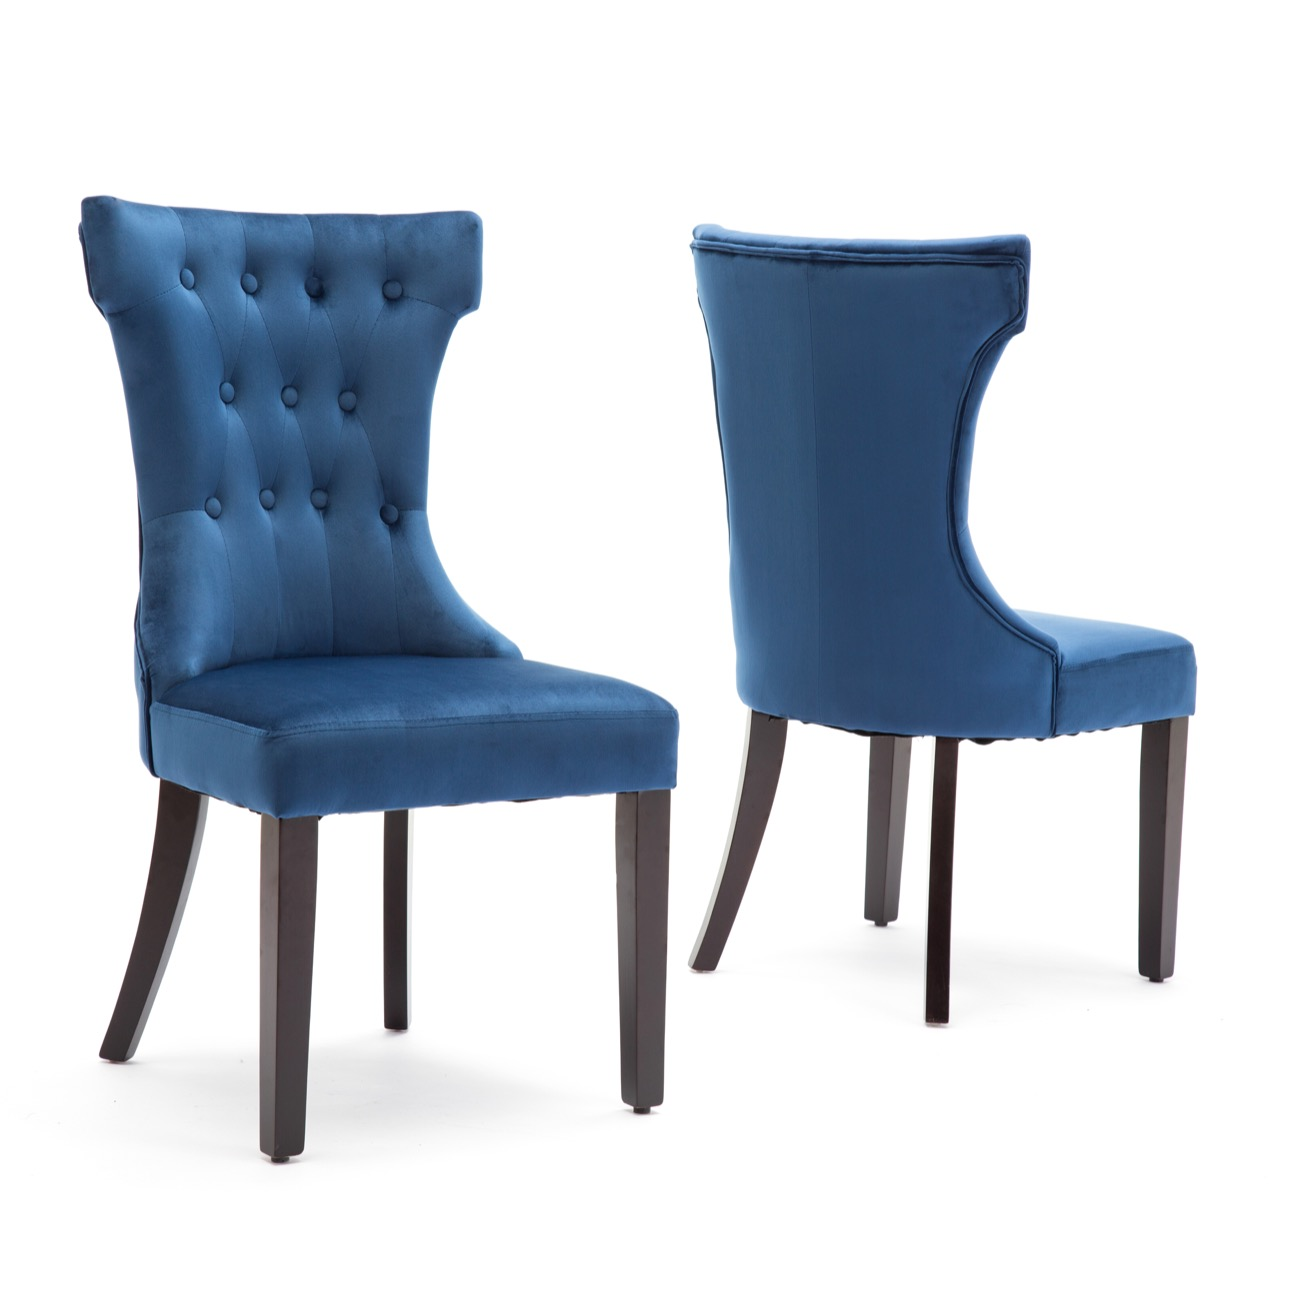 Dining Chair Set 2 Pair Accent Tufted Kitchen Modern Side: Set Of 2 Elegant Tufted Design Fabric Upholstered Modern